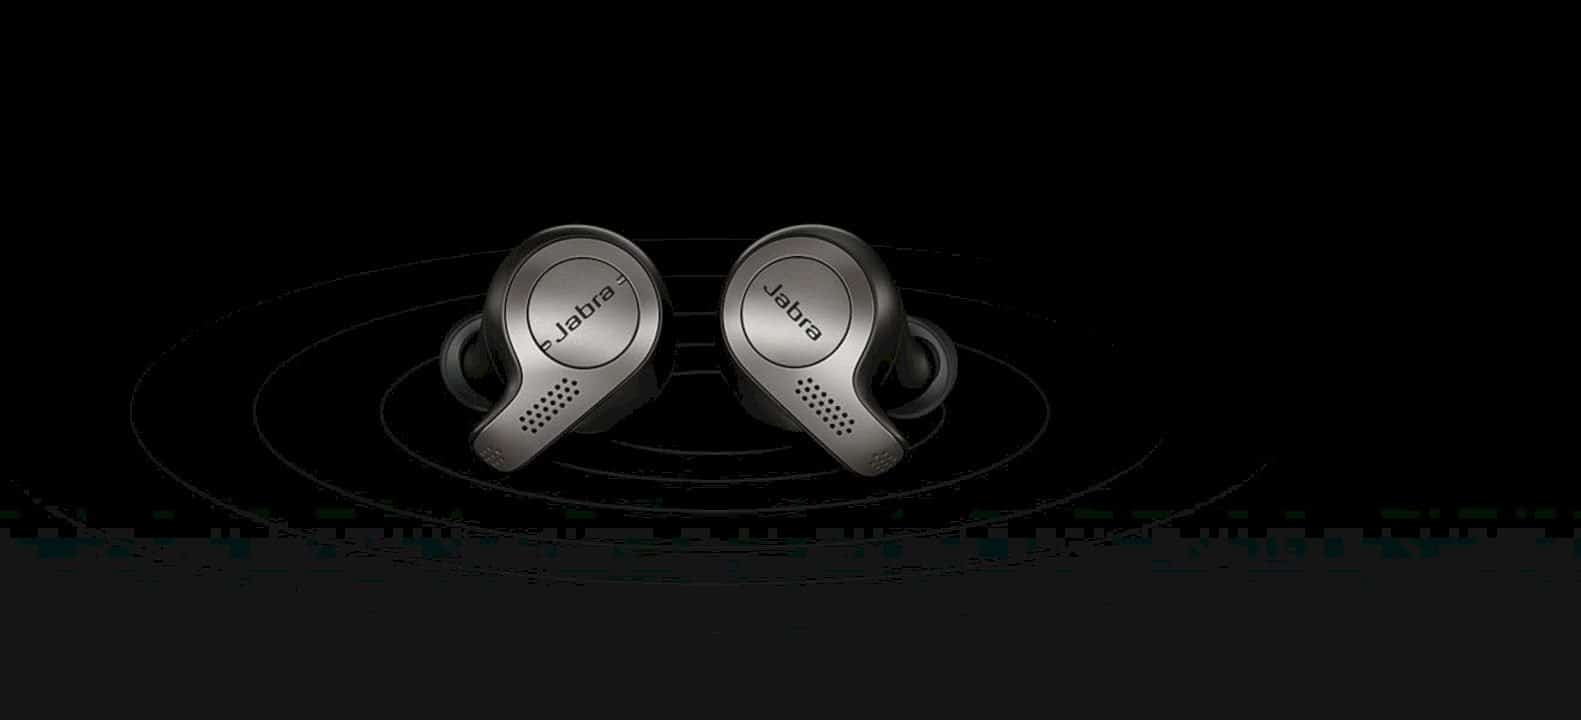 Jabra Elite 65t: Engineered for the best true wireless calls and music experience